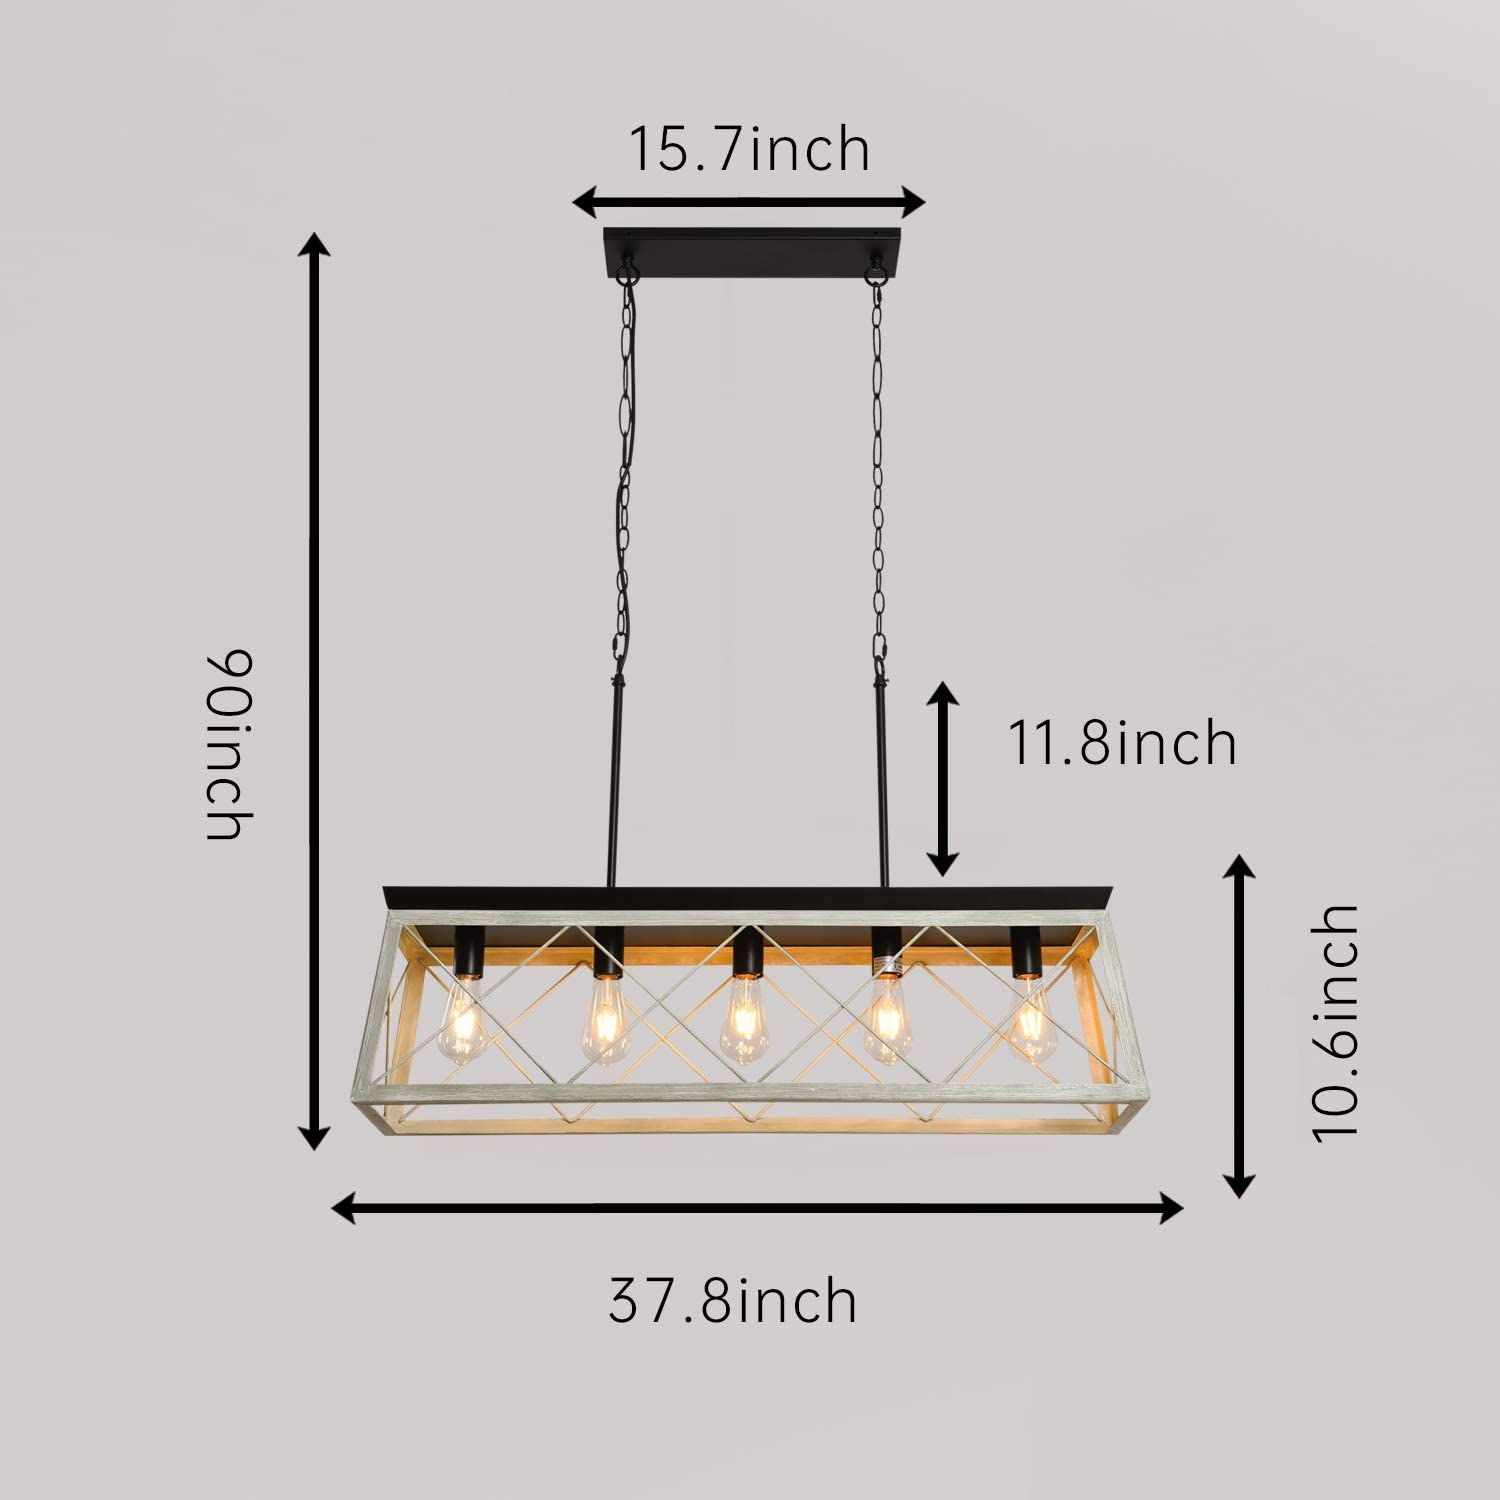 PUSU Farmhouse Dining Room Lighting Over Table Pendant Lighting for Kitchen Island Industrial Chandelier Edison Bulb Metal Open-Cage with White Wooden L37.8/'/'W9.8/'/'H10.6/'/'